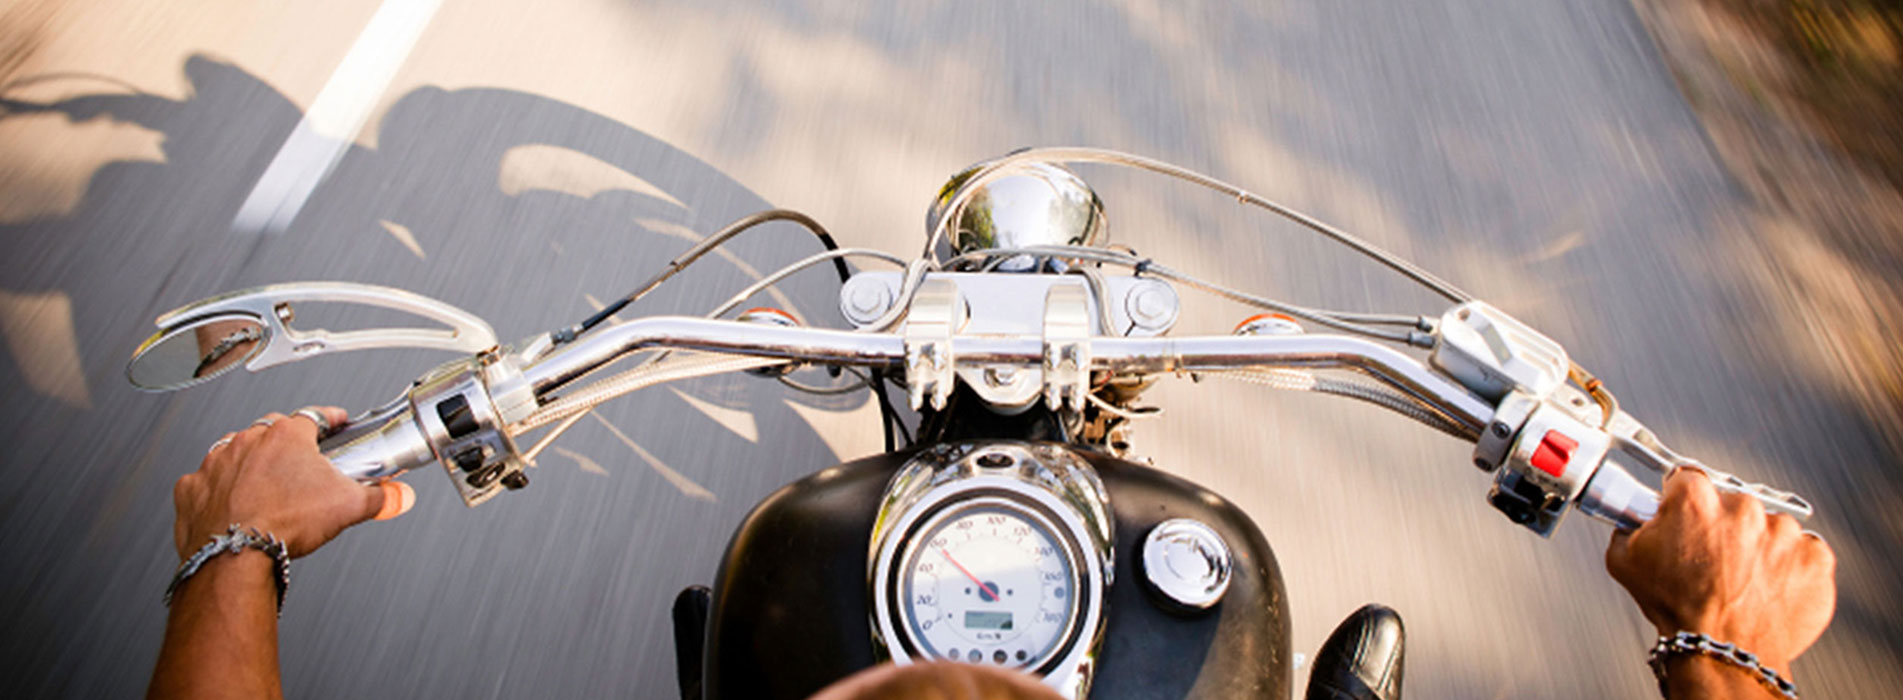 Pennsylvania Motorcycle insurance coverage